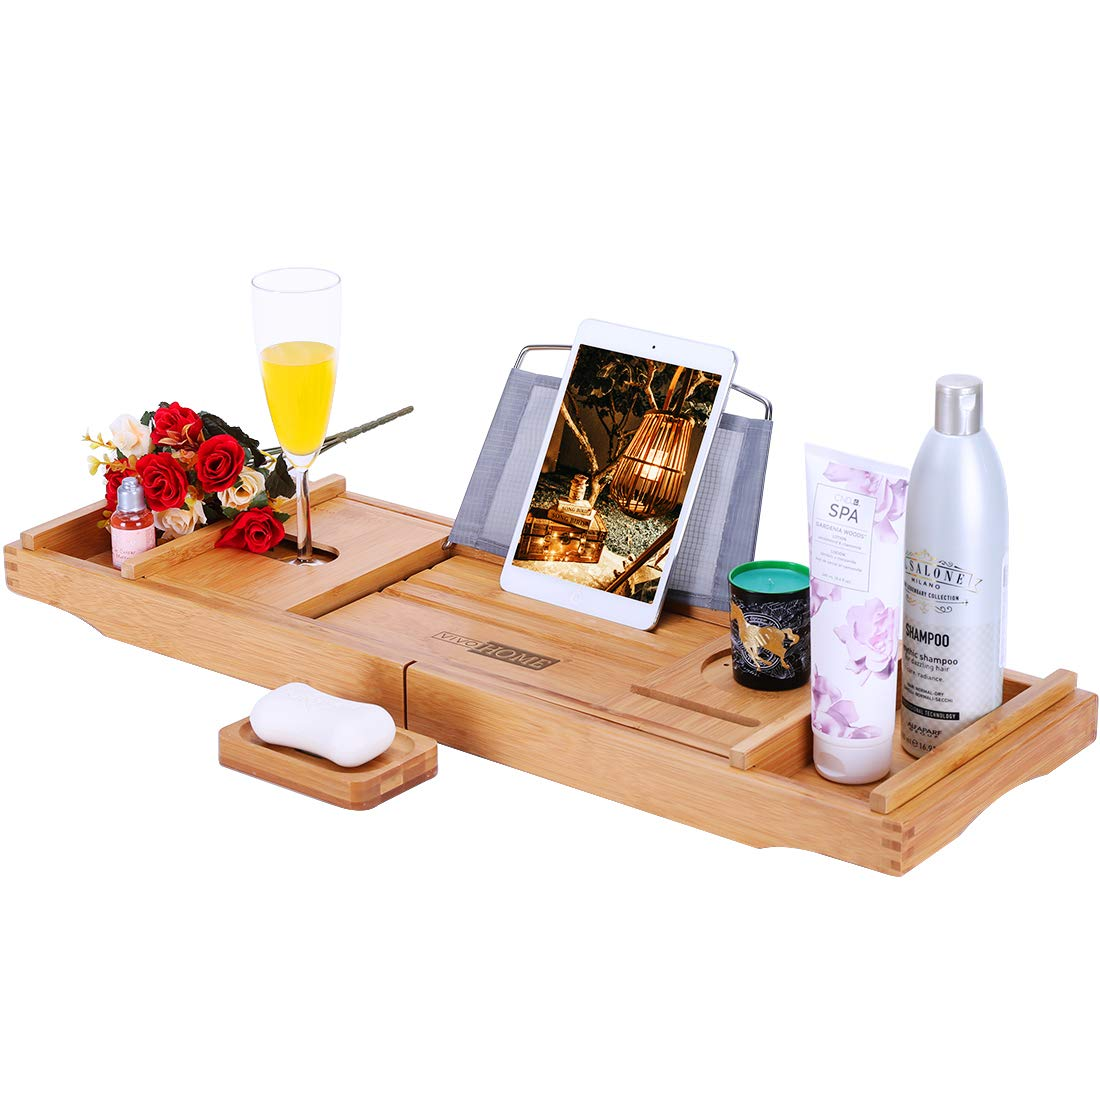 VIVOHOME Expendable Bamboo Bathtub Caddy Tray Bath Accessories with Cellphone Tablet and Wine Book Holder